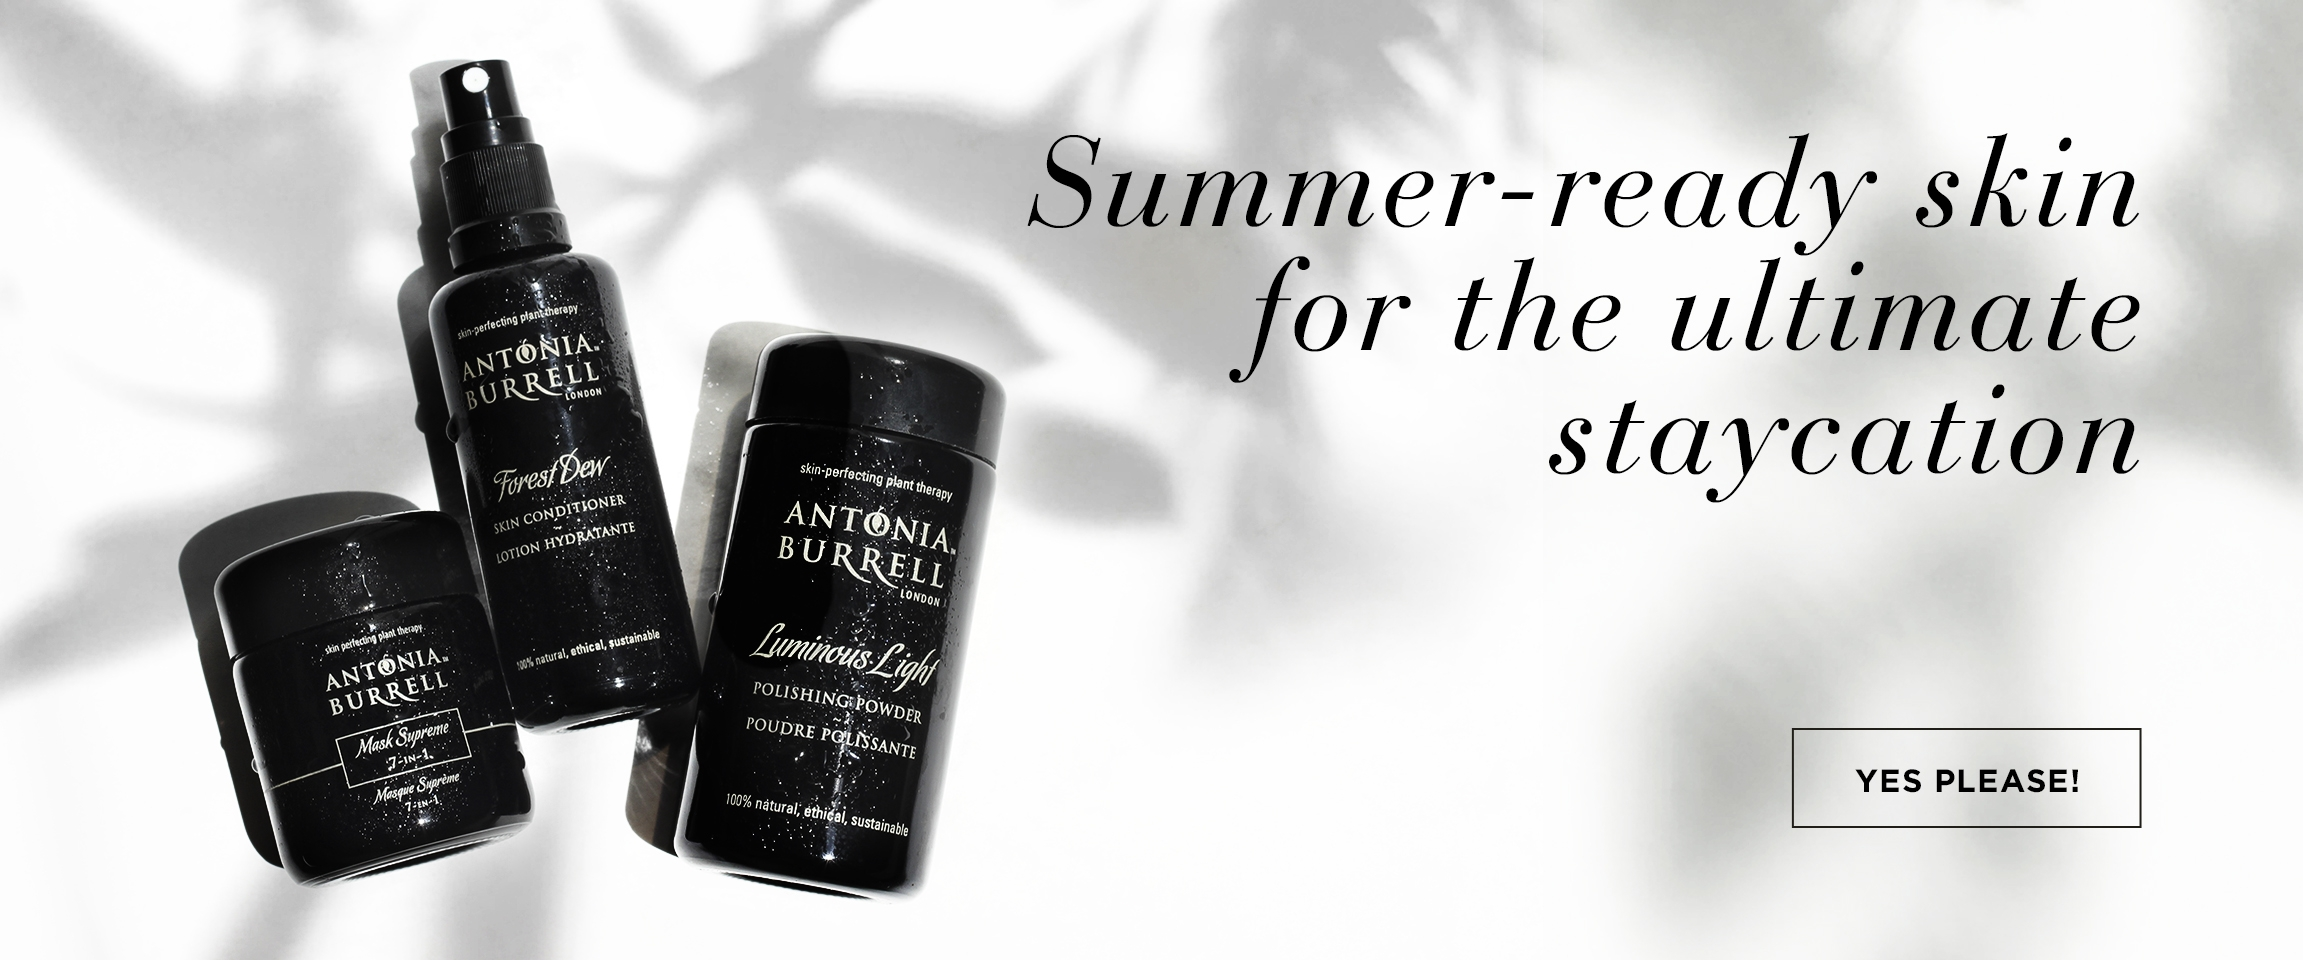 Antonia Burrell Summer Ready skin for the ultimate staycation